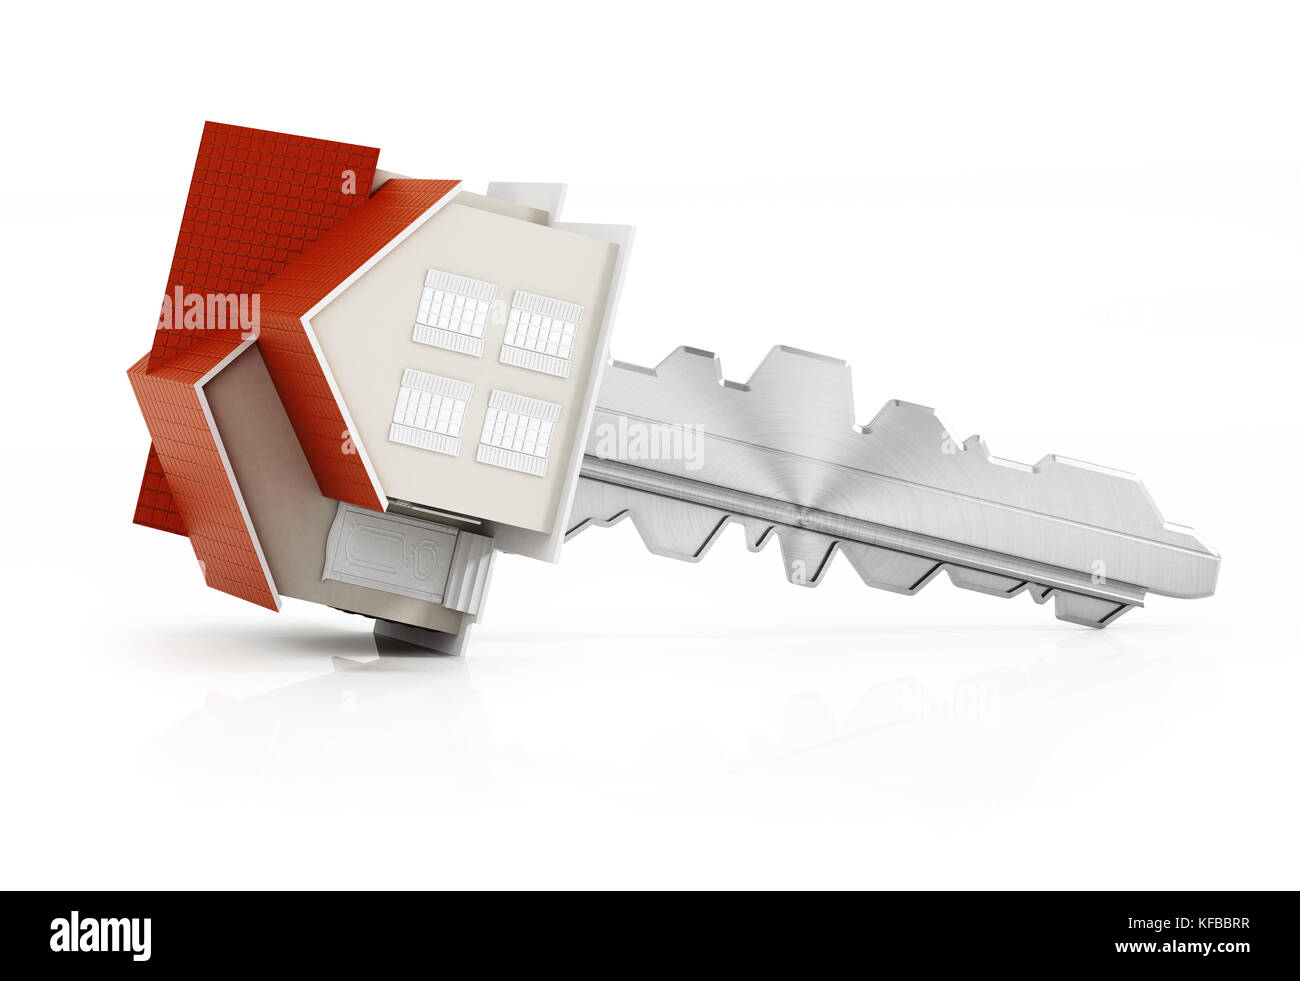 House model connected to the metal key. 3D illustration. - Stock Image